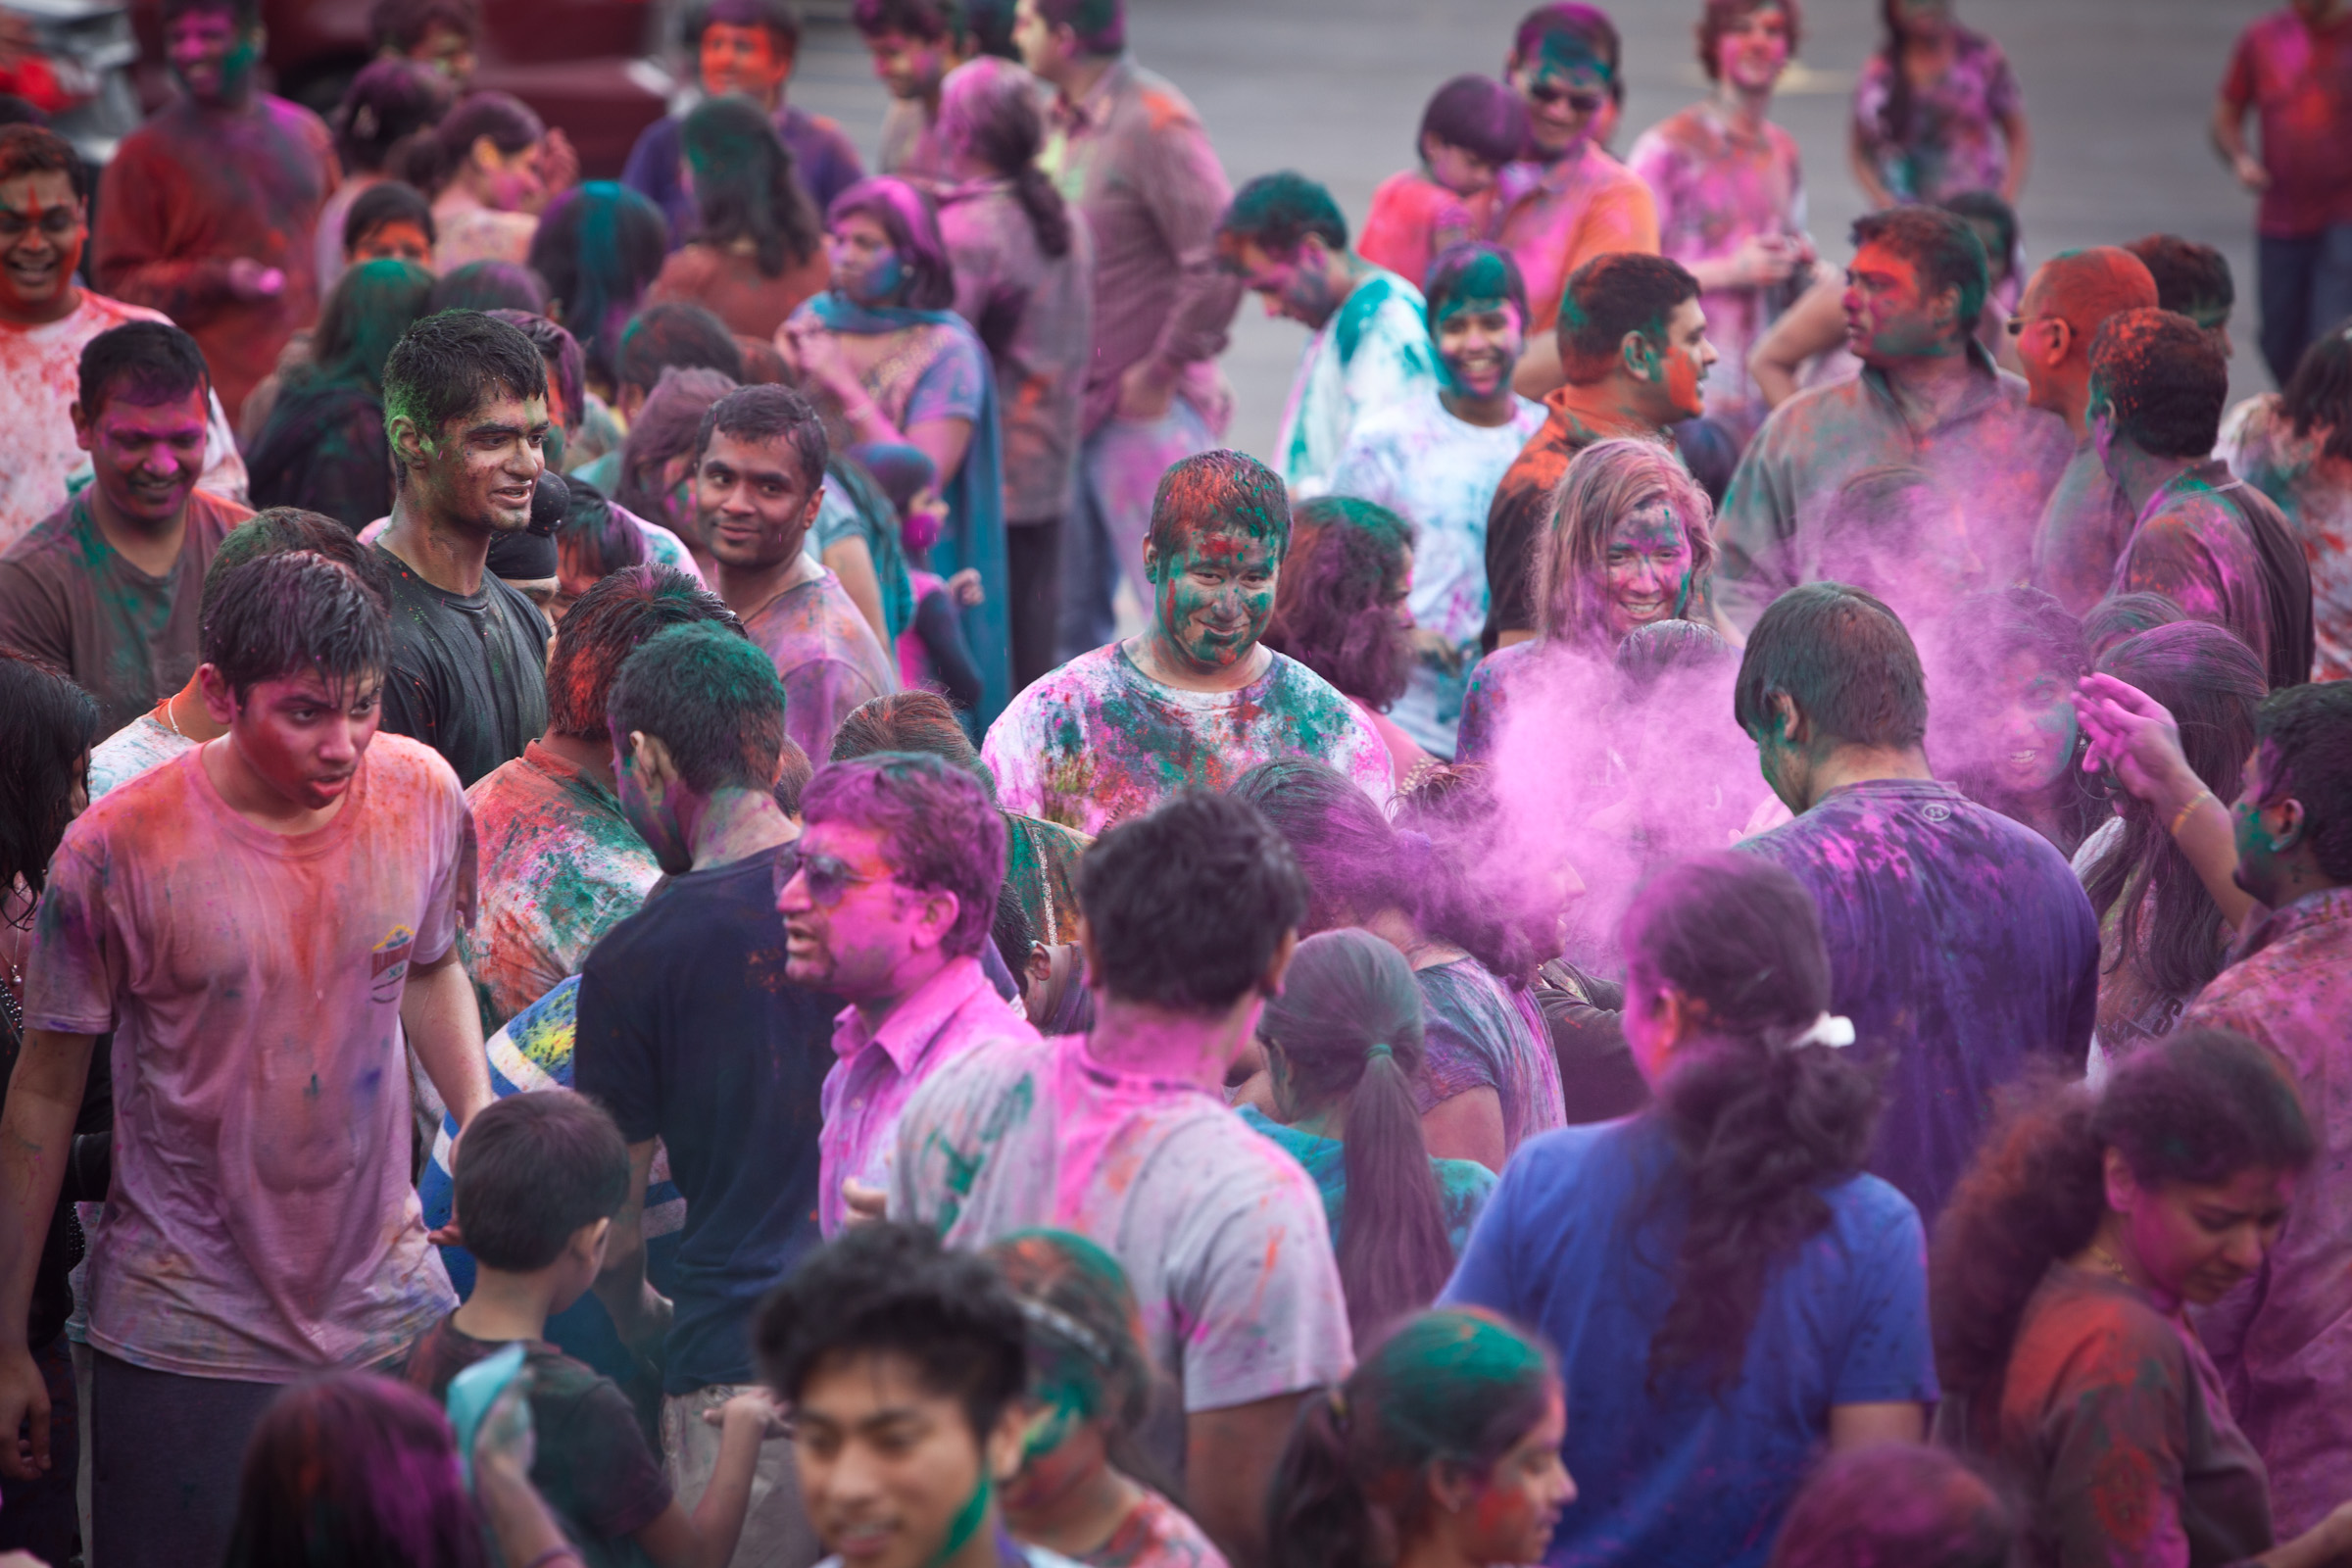 Reporting On Hinduism  Religionlink People Of All Ages Celebrate Holi The Festival Of Colors At The Hindu  Temple